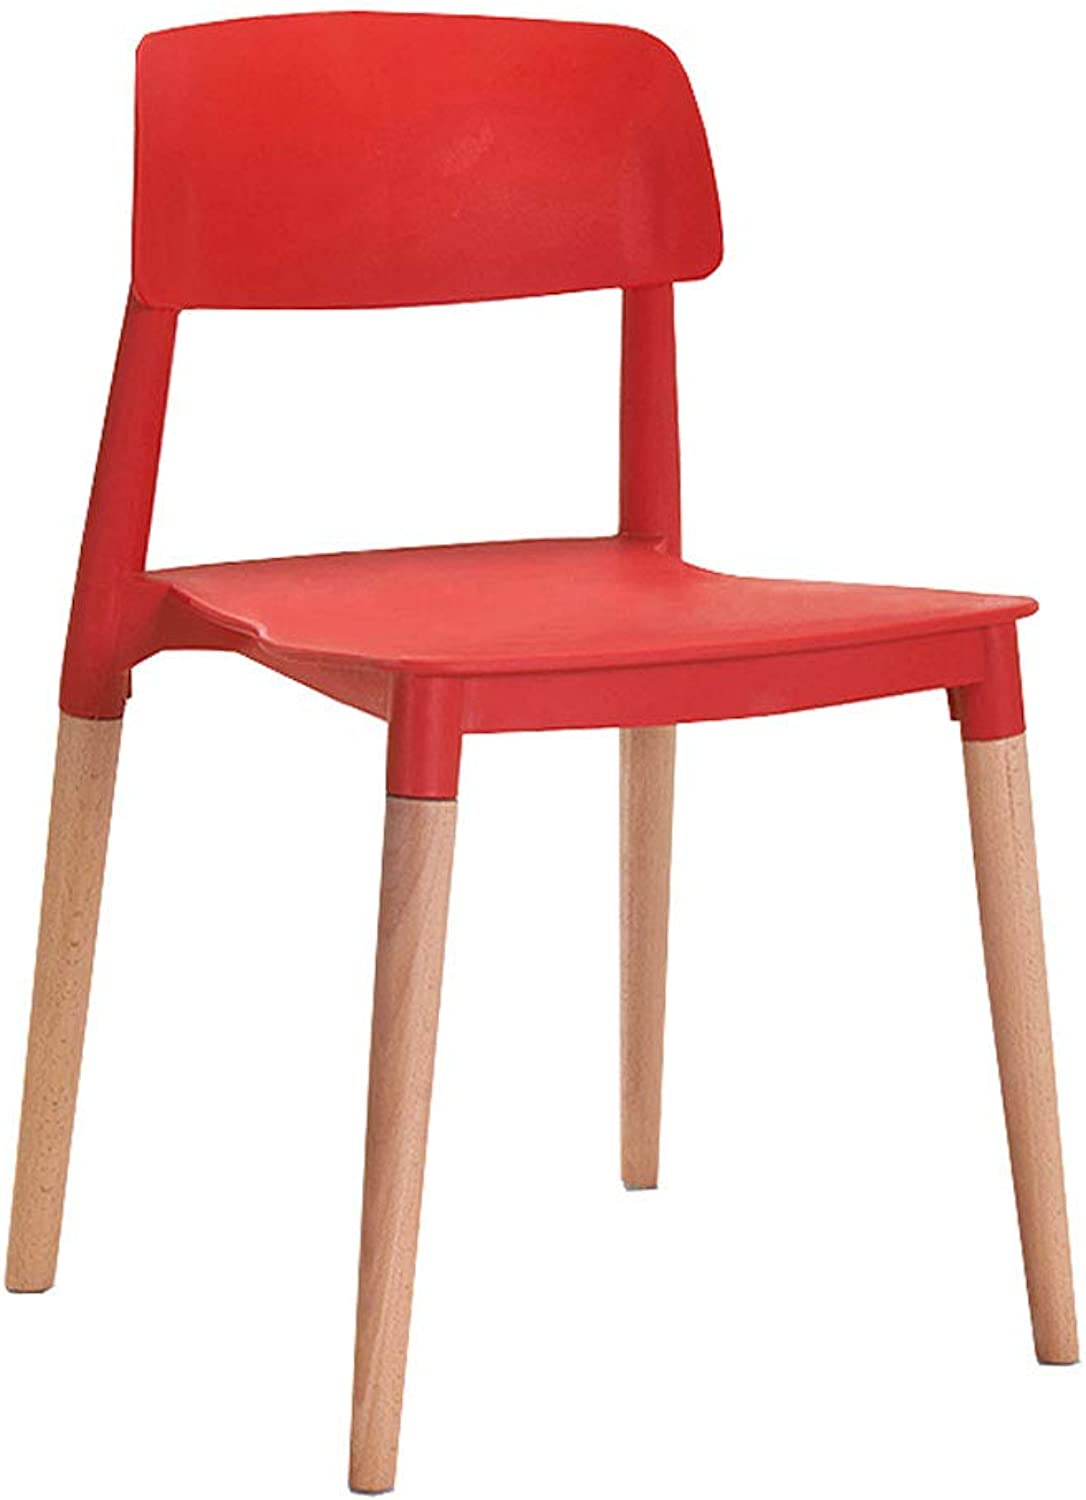 CQ Modern Minimalist Solid Wood Lazy backrest Dining Chair Nordic Leisure Home Home Stool (color   Red)